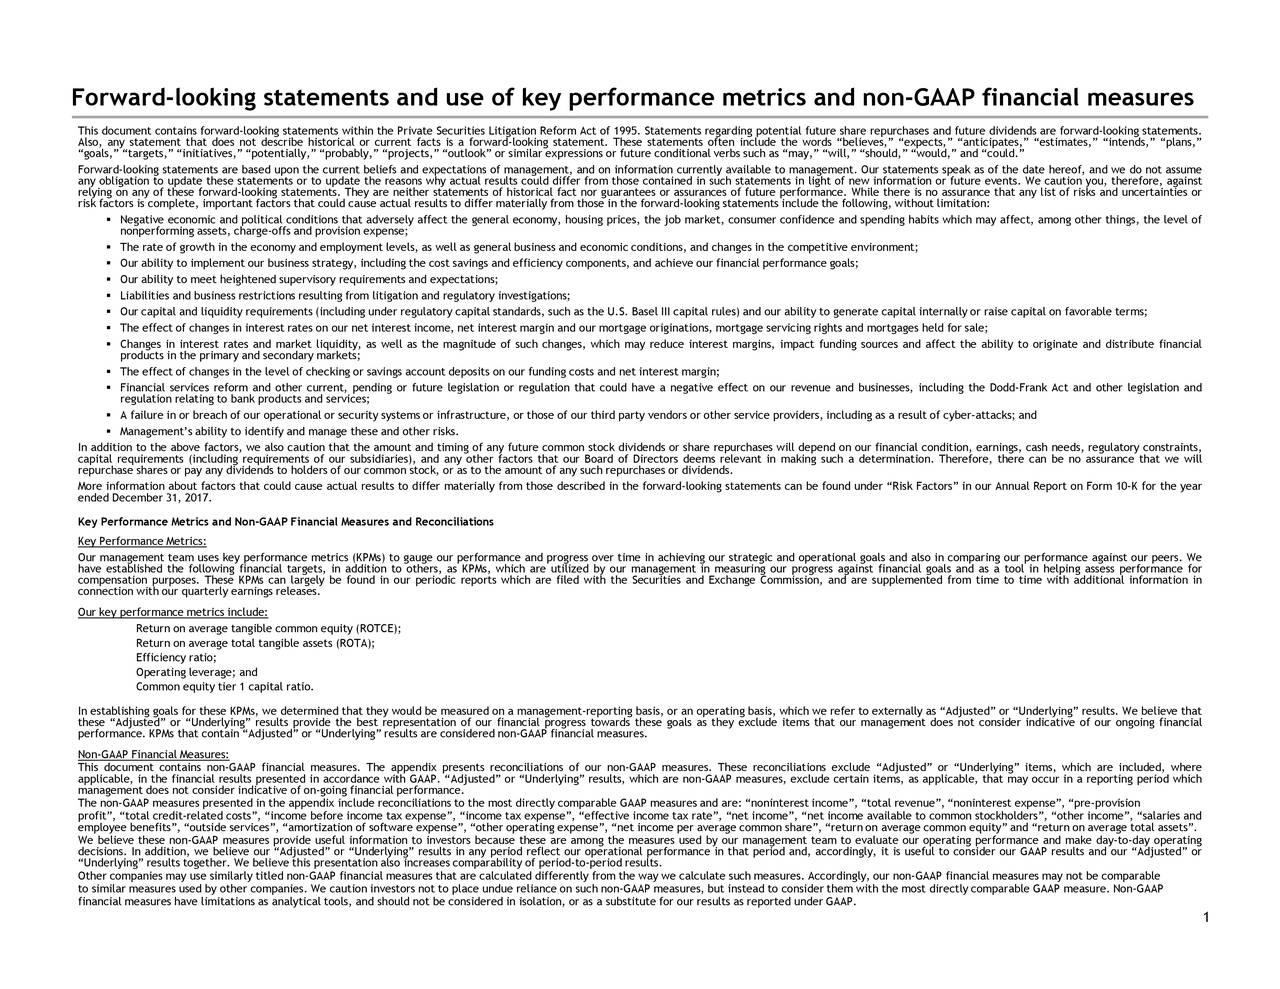 """ore, against tribute financial d we do not assume, the level of onal information in other legislation and day-to-day re. Non-GAAP ,"""" """"intends,"""" """"plans,"""" on Form 10-K for the yearss performance for avorable terms; ds, regulatory constraints, ng"""" results. We believe thaton average total assets"""". t of risks and uncertainties or e no assurance that we mance against our peers. We , which are""""other income"""", """"salaries and e"""", """"pre-provision ds are forward-looking statements. AAP results and our """"Adjusted"""" or ay occur in a reporting period which uld."""" light of new information or future events. We caution you, theref competitive environment; mpact funding sources and affect the ability to originate and dis ervicing rightour revenue and businesses, including the Dodd-Frank Act and ude the words """"believes,"""" """"expects,"""" """"anticipates,"""" """"estimatesaffect, es will depend on our financial condition, earnings, cash nee al performance goals; ng our progress against financial goals and as a tool in helpin lable to management. Our statemenand our ability to generate capital internally or raise ateginge Commission, and are supplemented from time to time with additidoes not consider indicatiyirating performance and make f future performance. While there is no assurance that any lis tatements can be found under """"Risk Factors"""" in our Annual Reportse reconce: """"noninterest such measures. Accordingly, our non-GAAP financial measurle GAAP measu arding potential future share repurchases and future dividenitation: elevant in making such a determination. Therefore, there can b """"neage common share"""", """"return on average common equity"""" and """"retur ults as reported under GAAP. e in that period and, accordingly, it is useful to consider our G onal verbs such as """"may,"""" """"will,"""" """"should,"""" """"would,"""" and """"co n-GAAP measures, exclude certain items, as applicable, that m ce metrics and non-GAAP financial measures s general business and economic conditions, and changes in the tual results could differ from those g"""